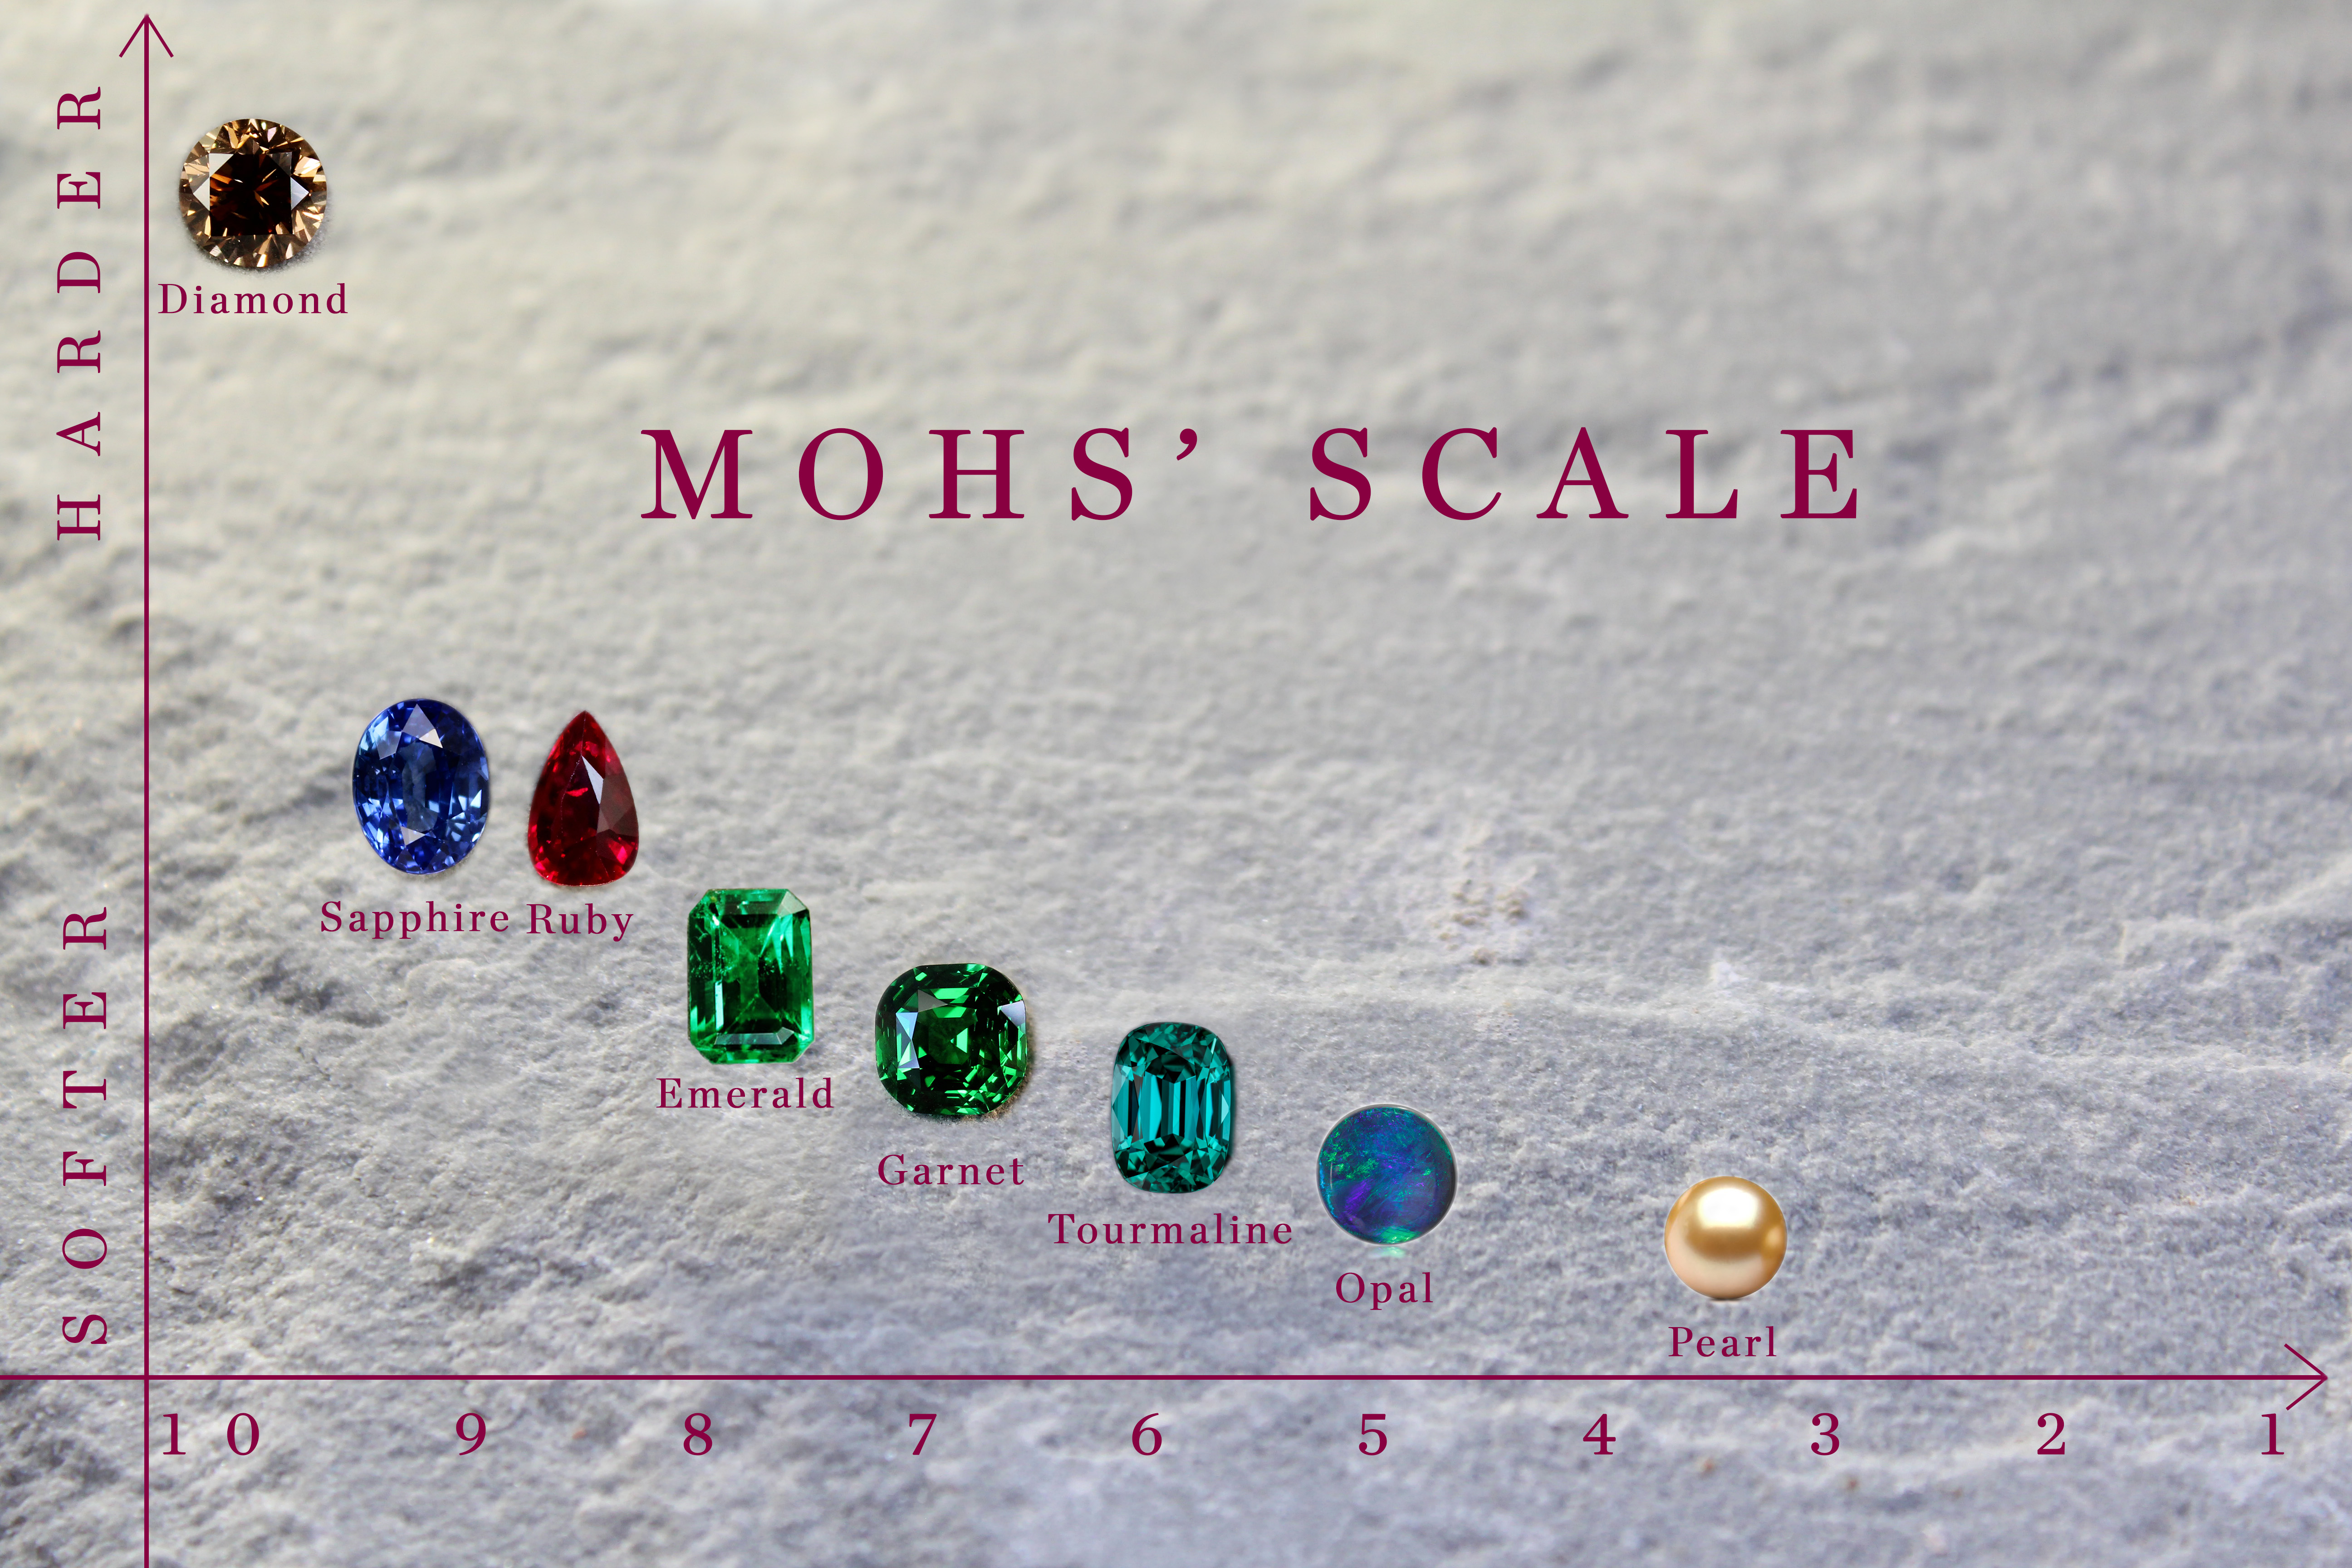 Mohs scale + emerald